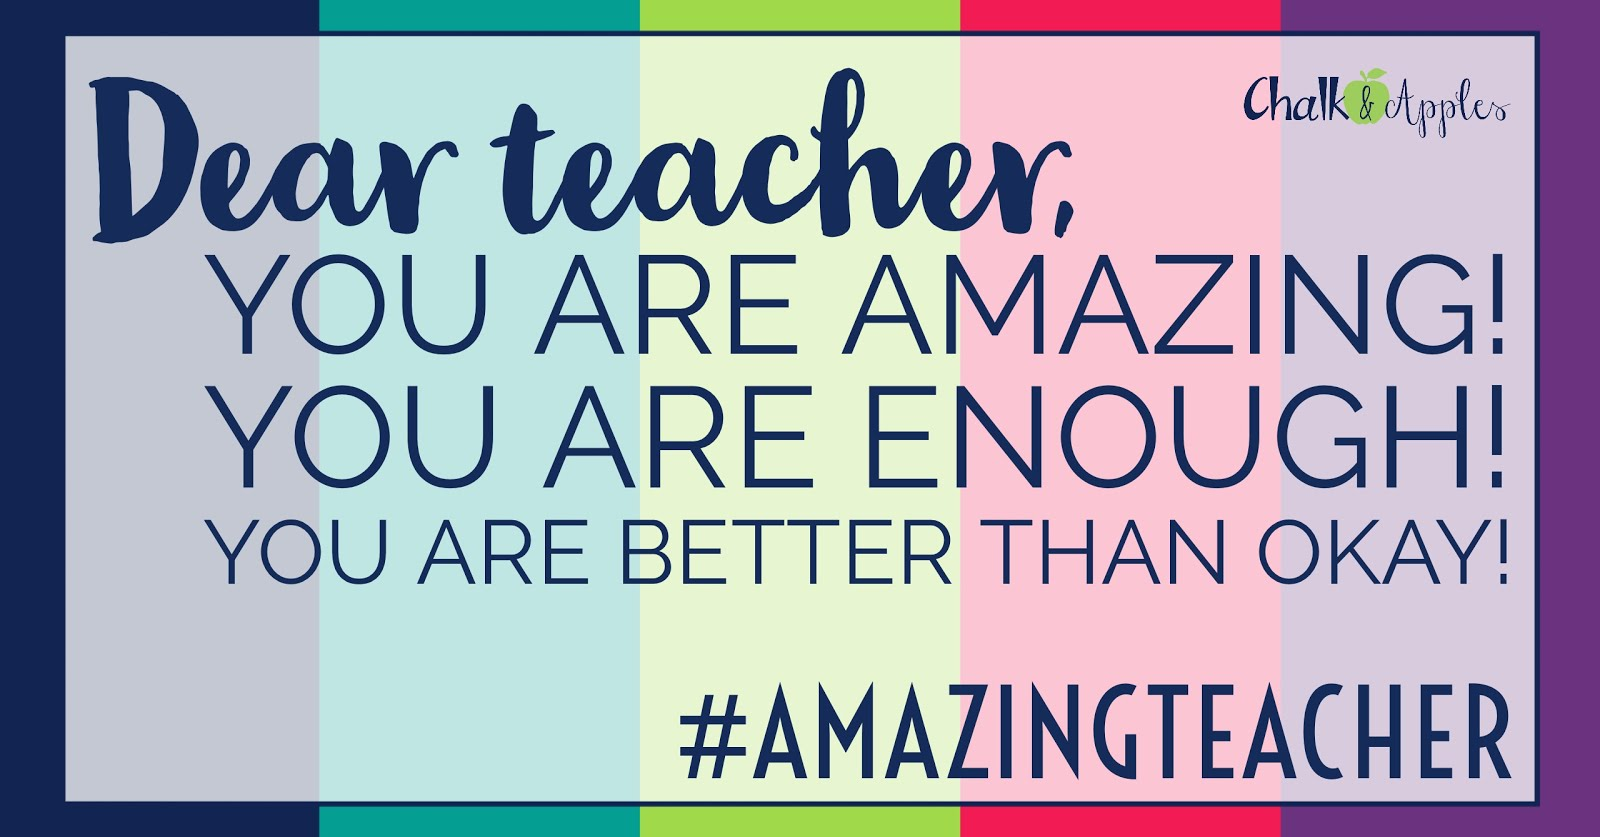 An open letter from one amazing (but less than perfect) teacher to another. You are enough. You are more than okay. You are amazing! #amazingteacher